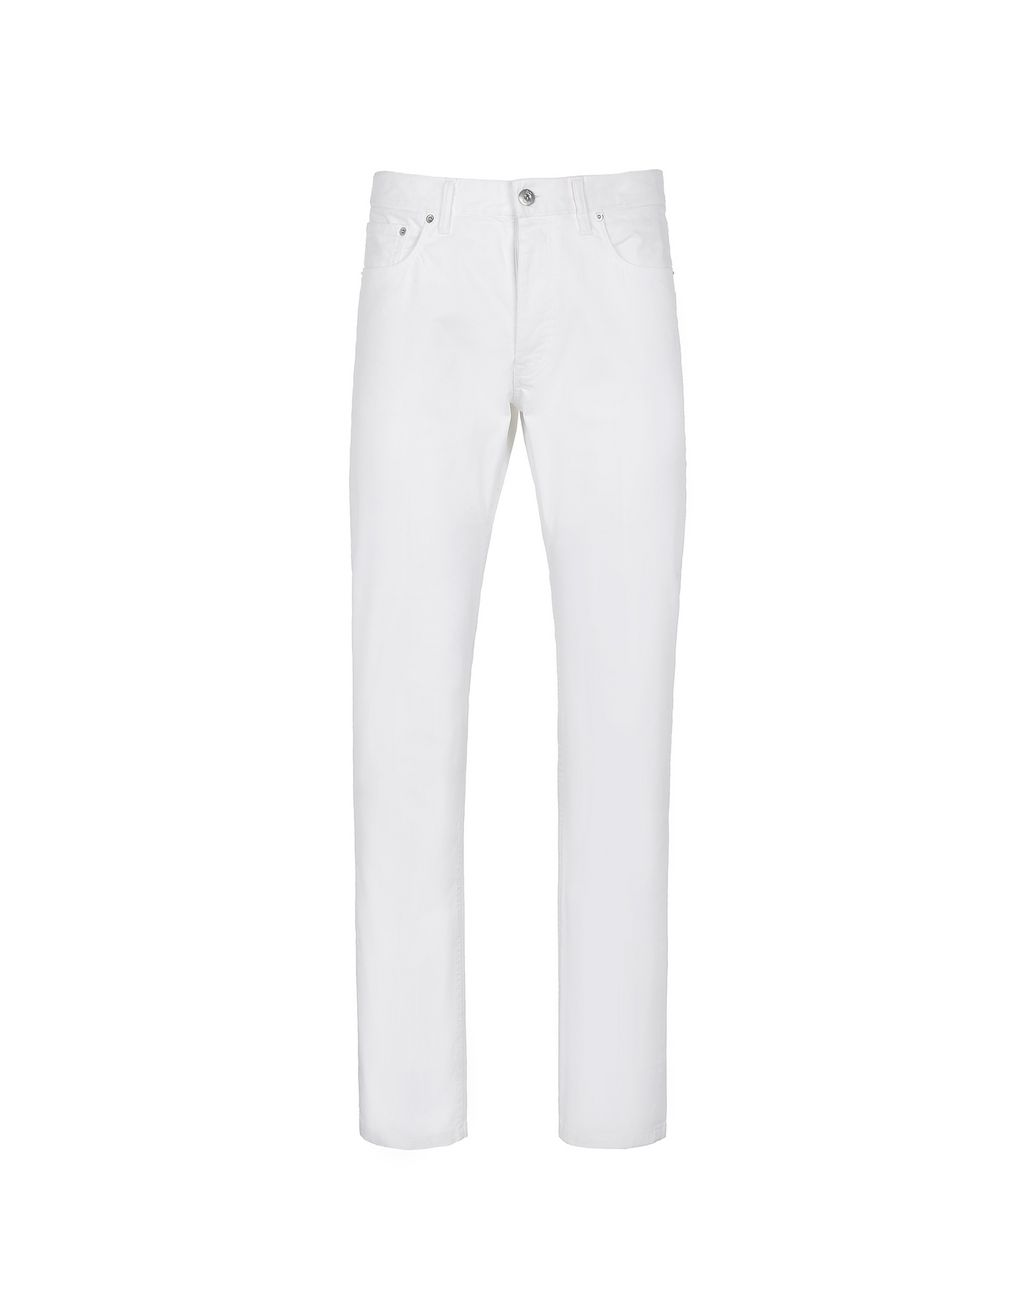 BRIONI  White Regular Fit Jeans Denim Man f